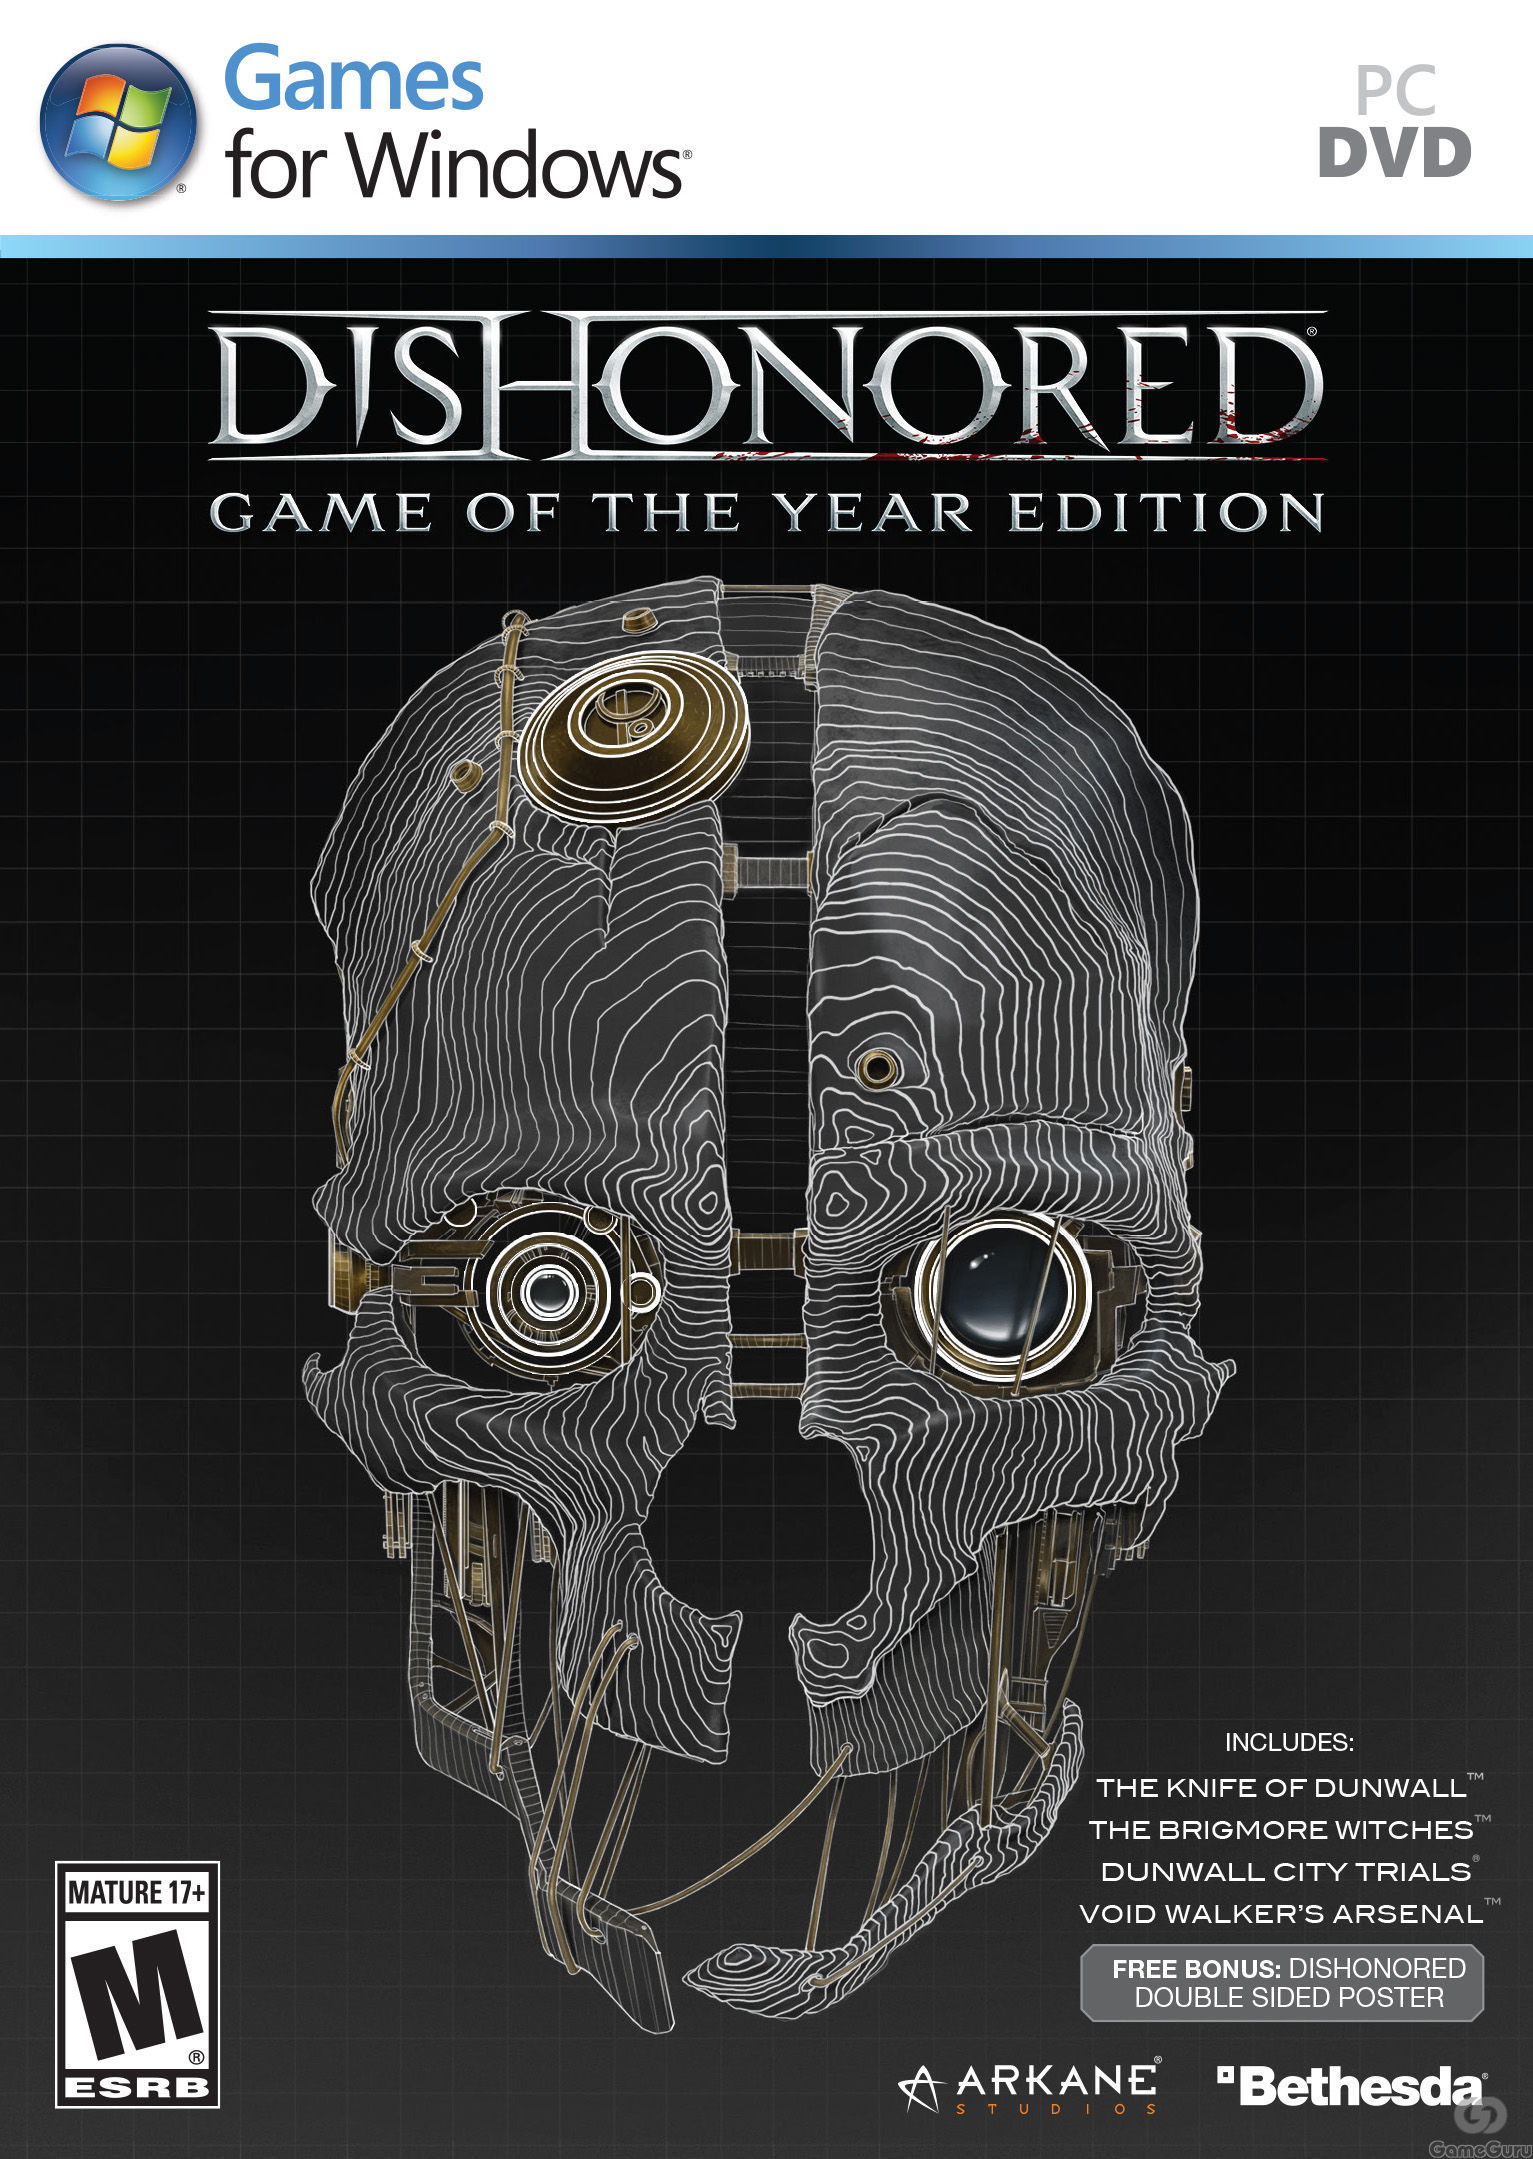 Dishonored. Game of the Year Edition выйдет 22 ноября